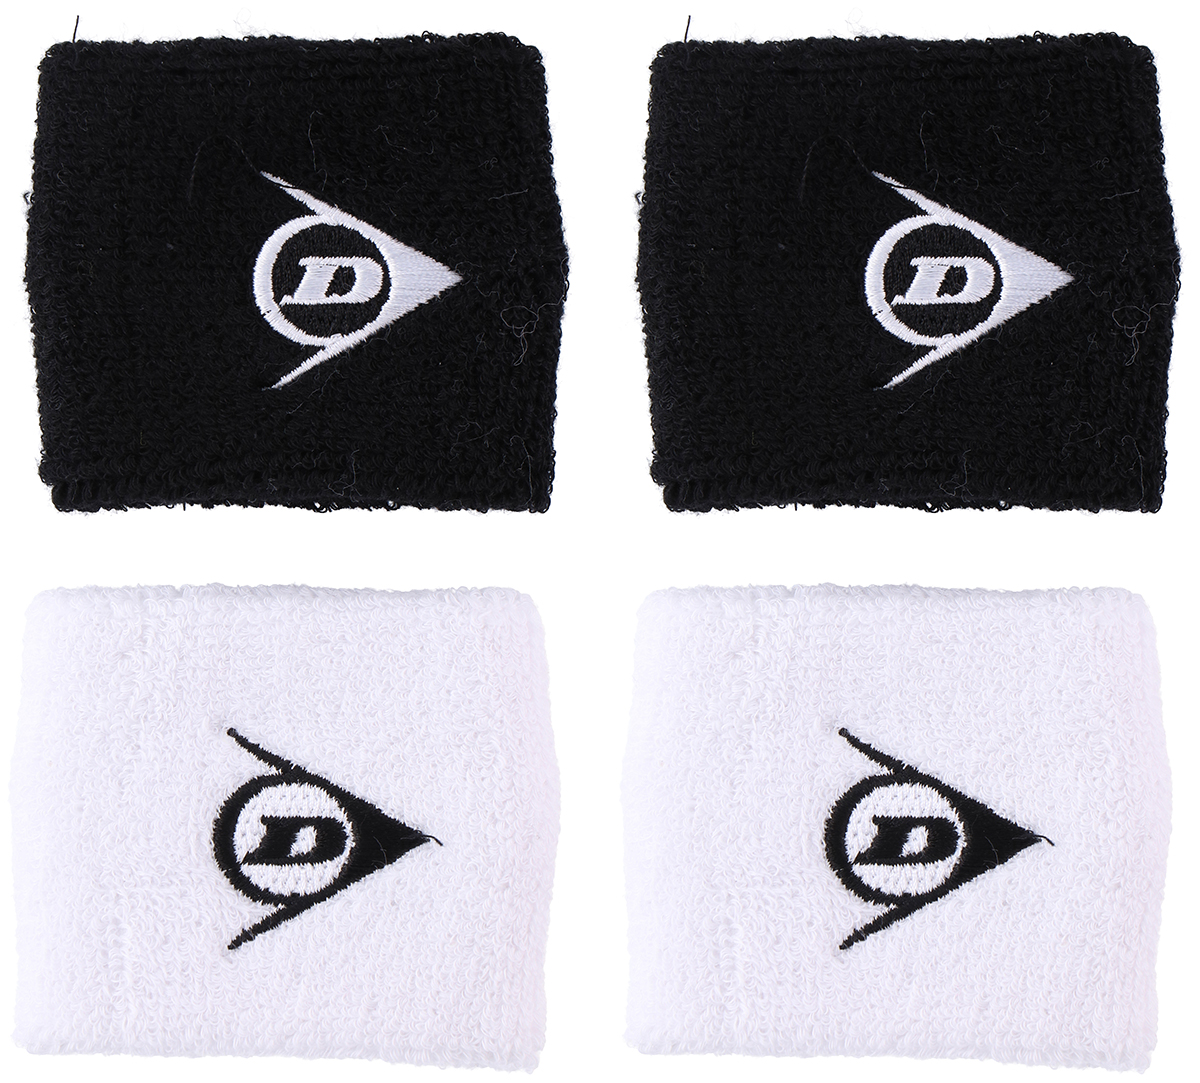 d1347424f5 Dry fit wristbands with Terry loop fabric that absorbs moisture. - Comes as  a pair in black or white with Dunlop logo. - One size fits all